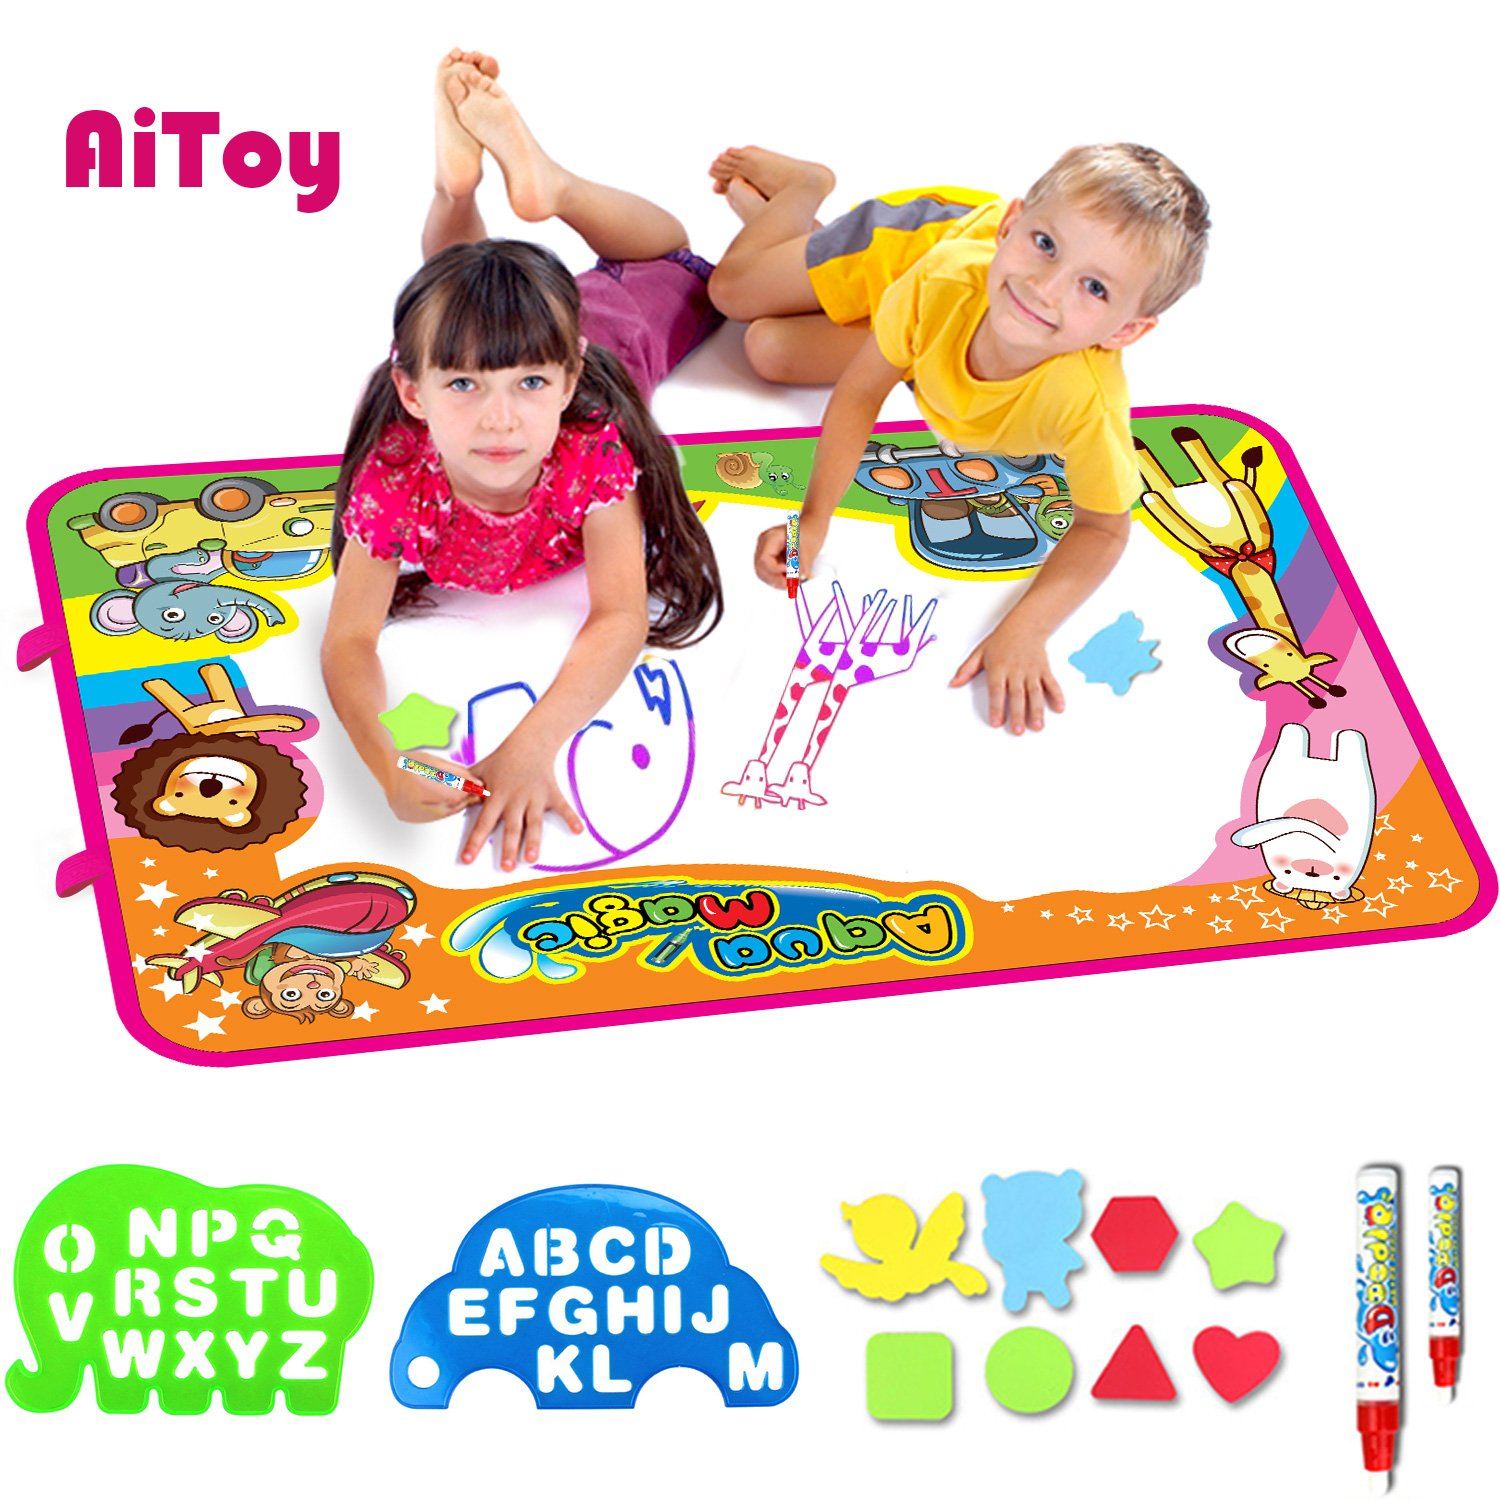 AiToy Aqua Magic Mat, Water Drawing Mat Extra Large Kids Toys Toddlers Painting Board Writing Mats with 2 Magic Pens and Letter Templates for Boys Girls Gift Size 34.5'' X 22.5'' (X-Large)